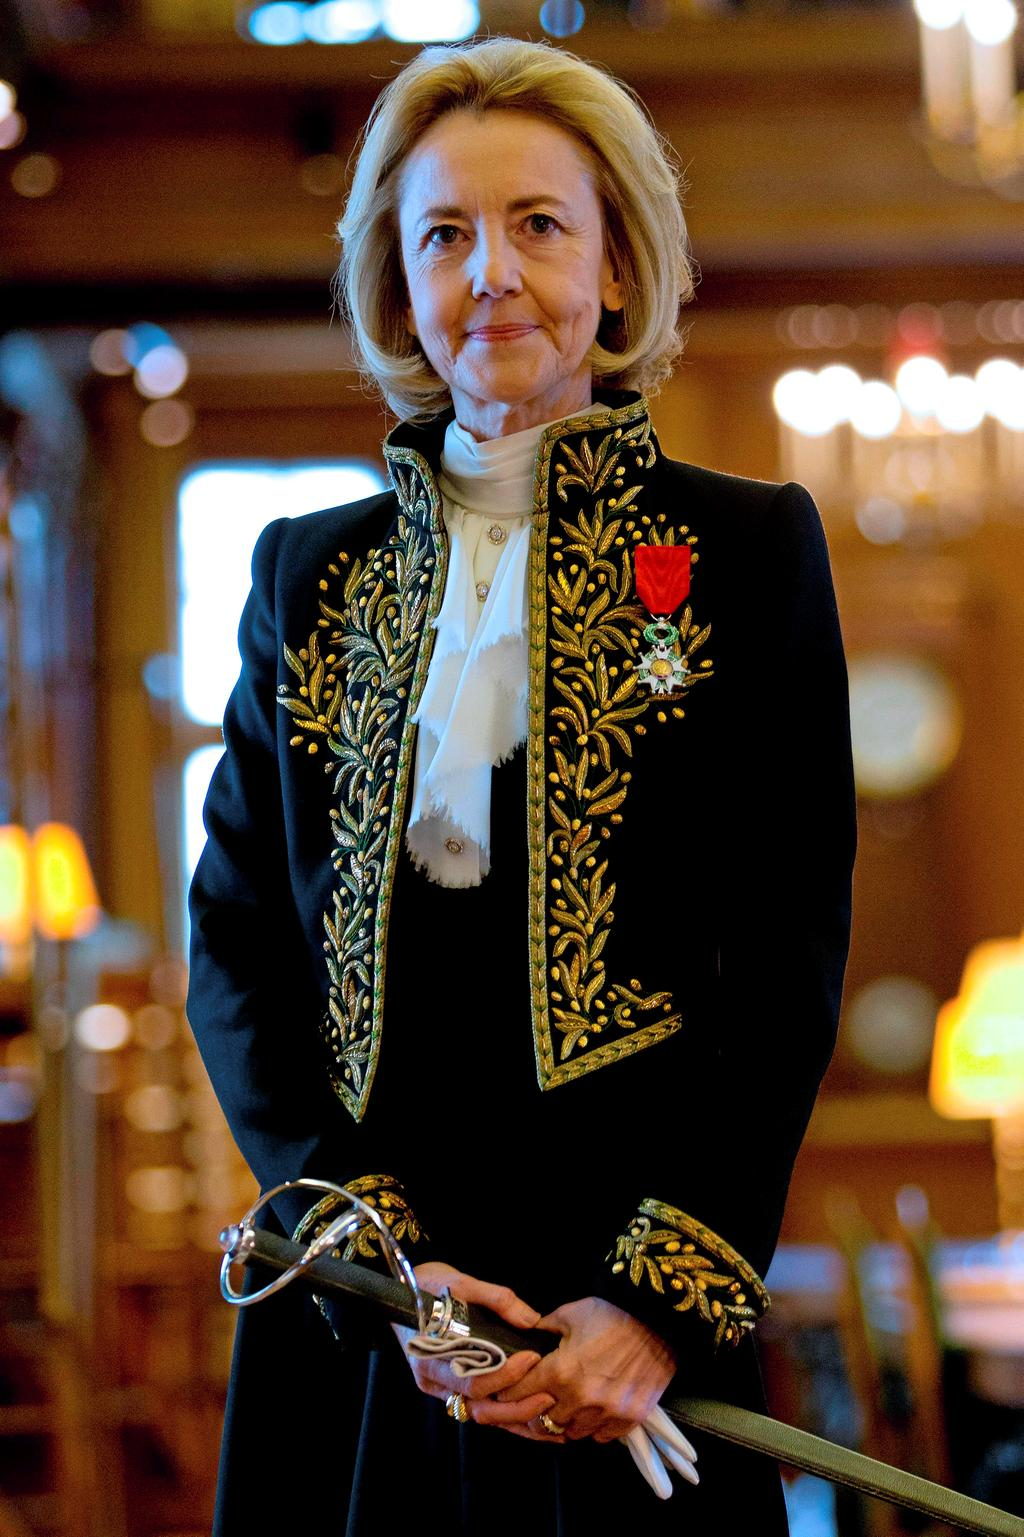 (FILES) In this file photo taken on October 23, 2014, new member of the Academie Francaise (French Academy), author Dominique Bona, wearing her Academician suit and holding her sword, poses in the institution's library following her reception ceremony in Paris. - The official guardians of the French language may be about to end centuries of male linguistic dominance by allowing more feminine words for professions. (Photo by KENZO TRIBOUILLARD / AFP)